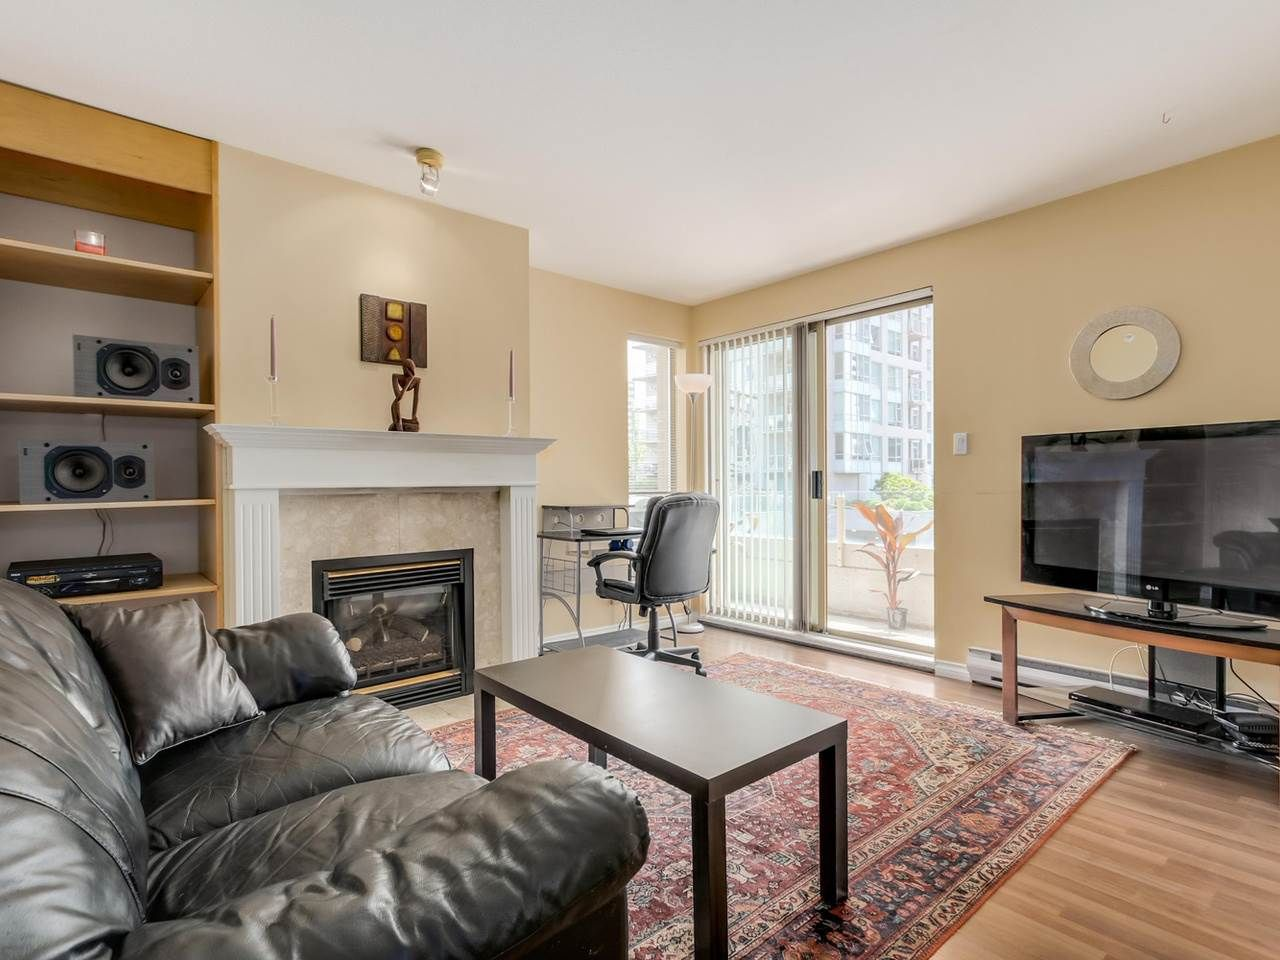 """Photo 3: Photos: 304 137 W 17 Street in North Vancouver: Central Lonsdale Condo for sale in """"Westgate"""" : MLS®# R2075830"""